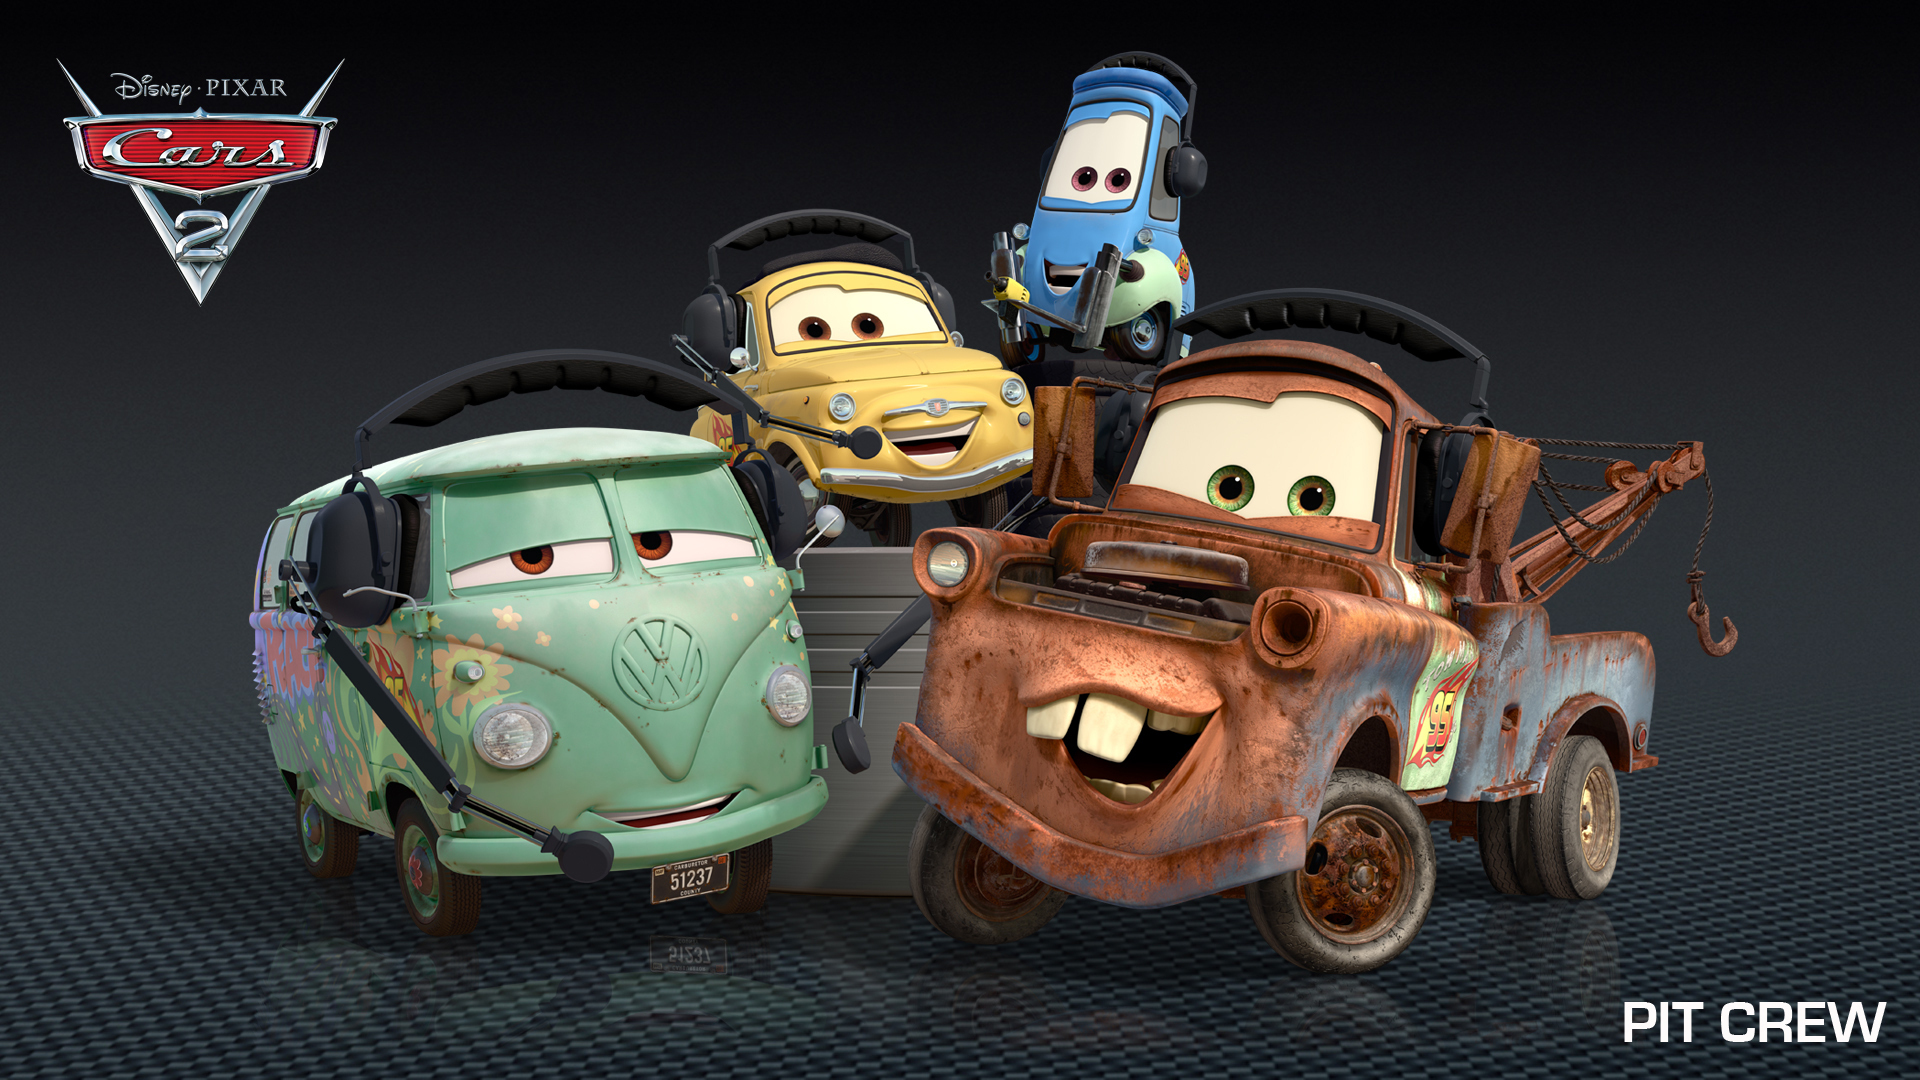 Cars 2 Cartoon Characters Names : Mater the tow truck images pictures hd wallpaper and